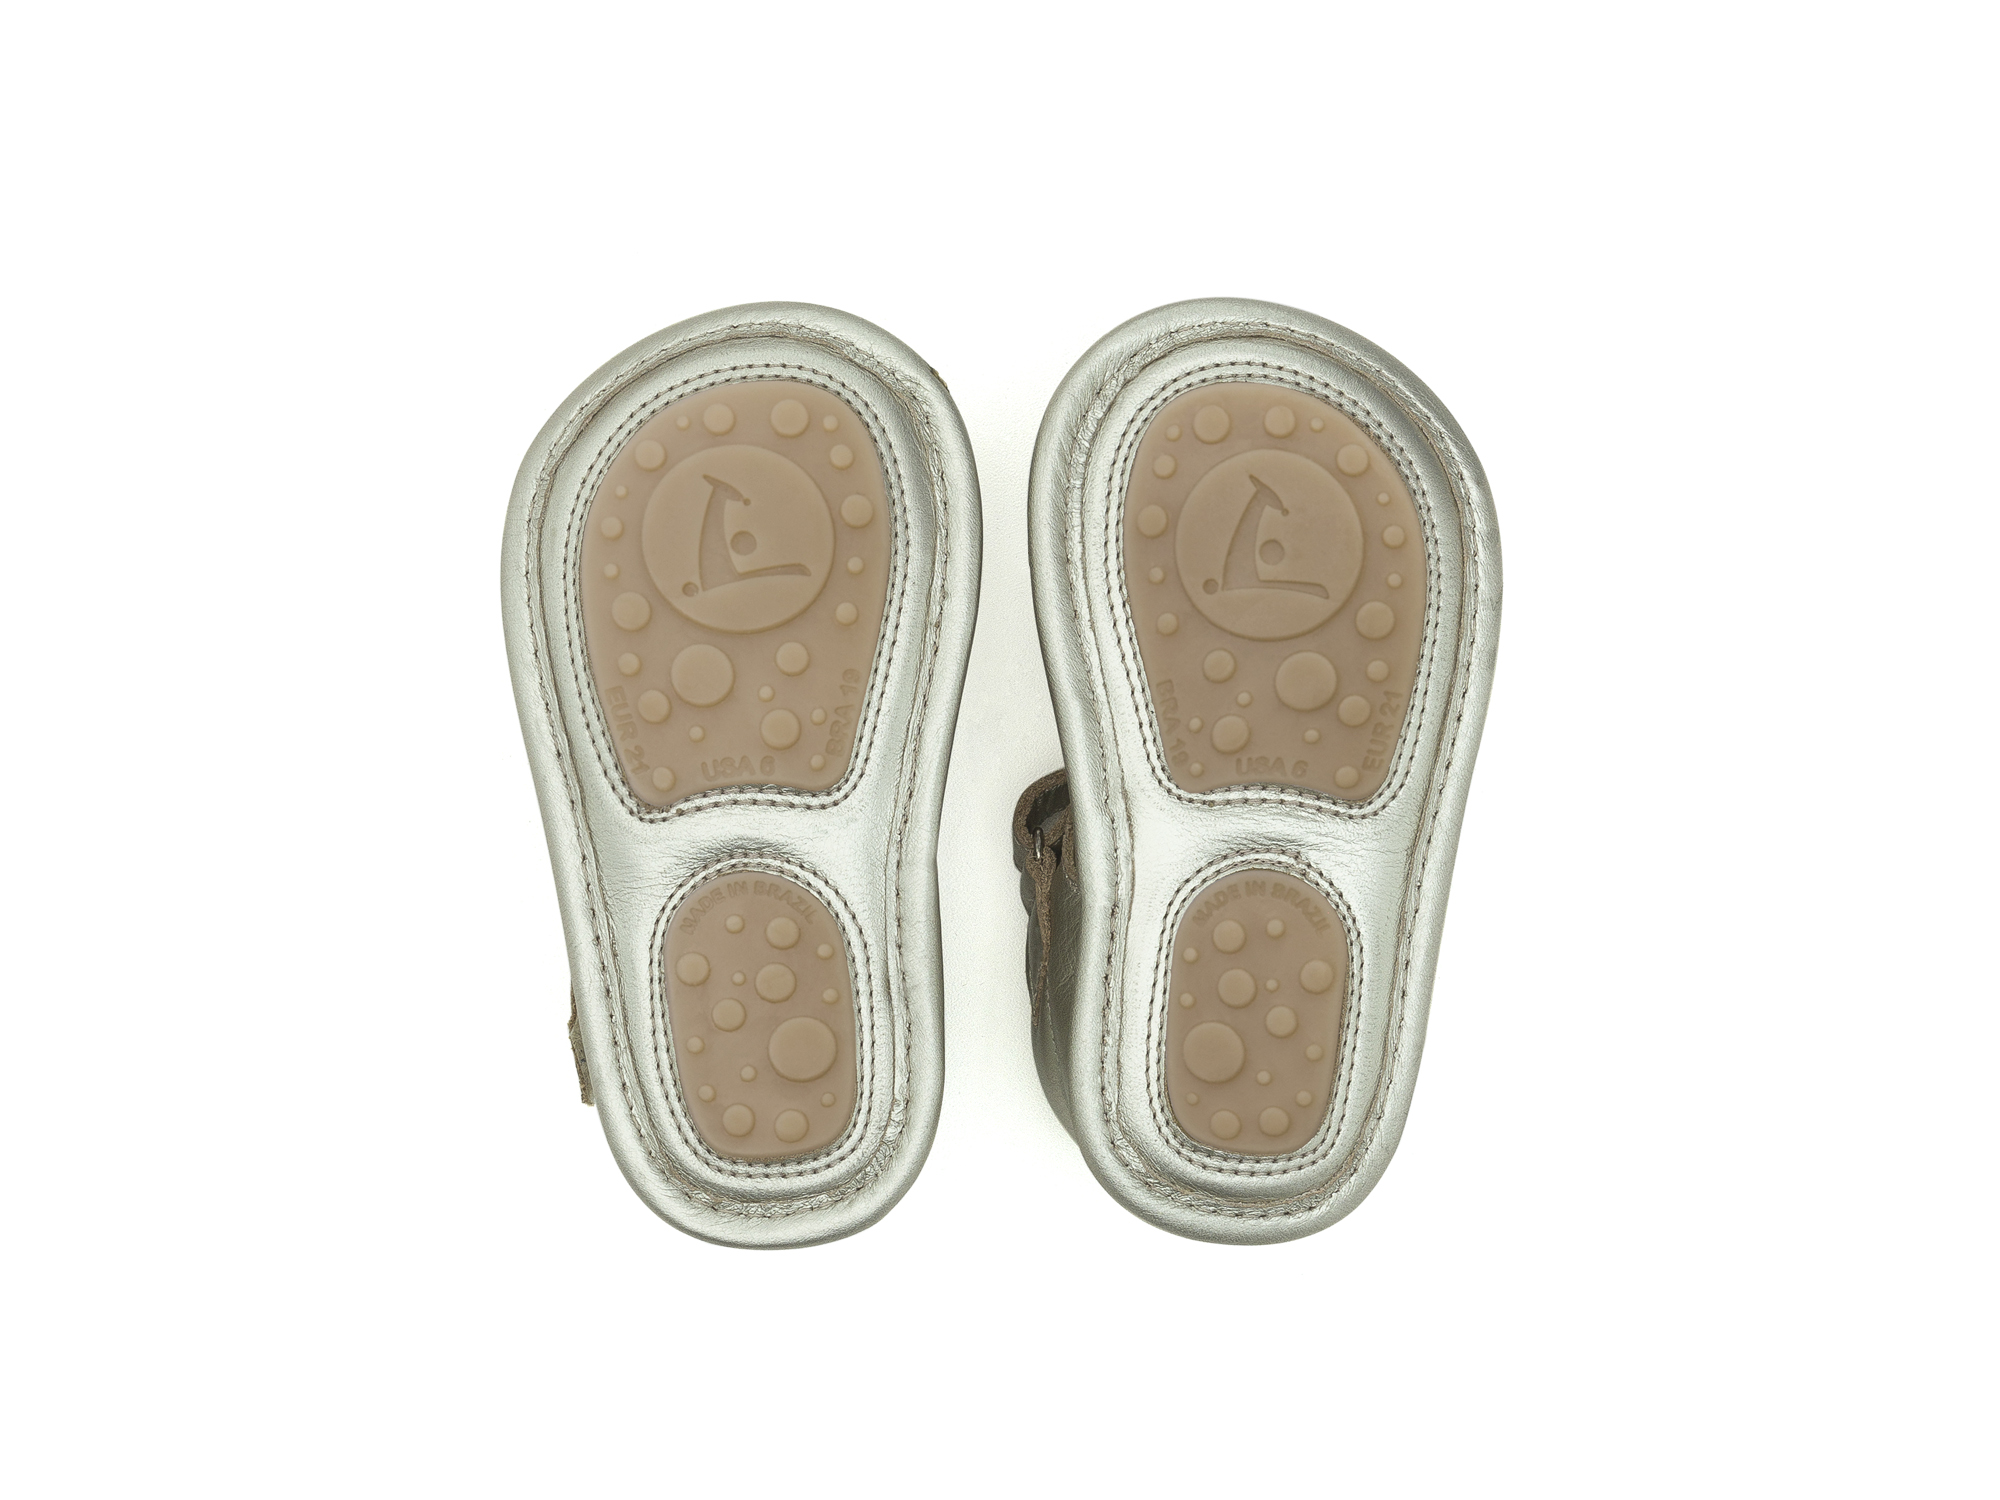 Sandal Windy Whitegold/ Golden Lace Baby for ages 0 to 2 years - 3